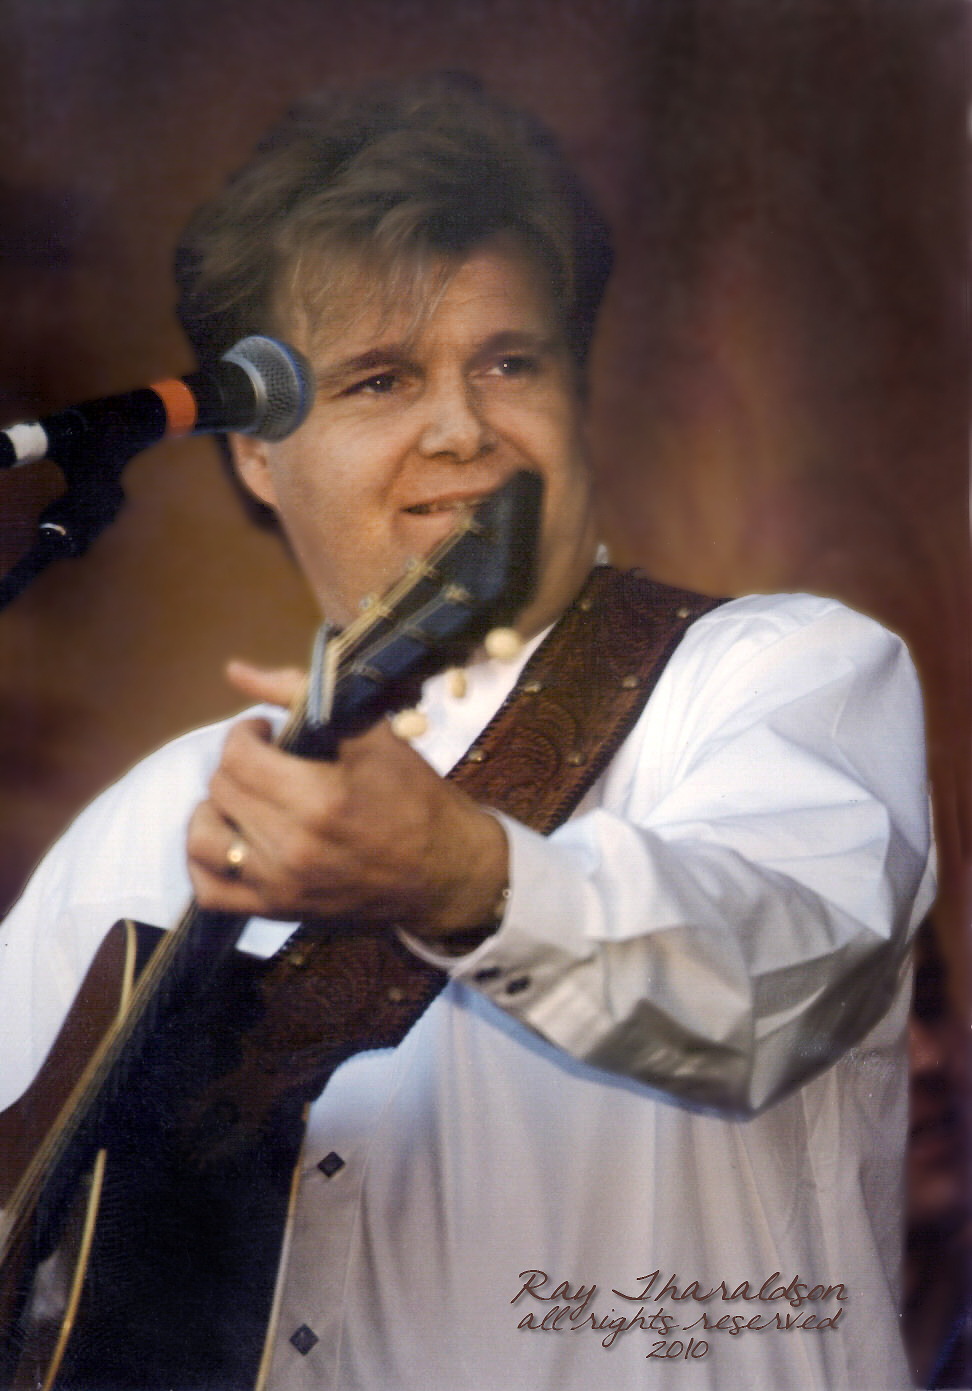 American News Broadcasting Ricky Skaggs Appearing At The